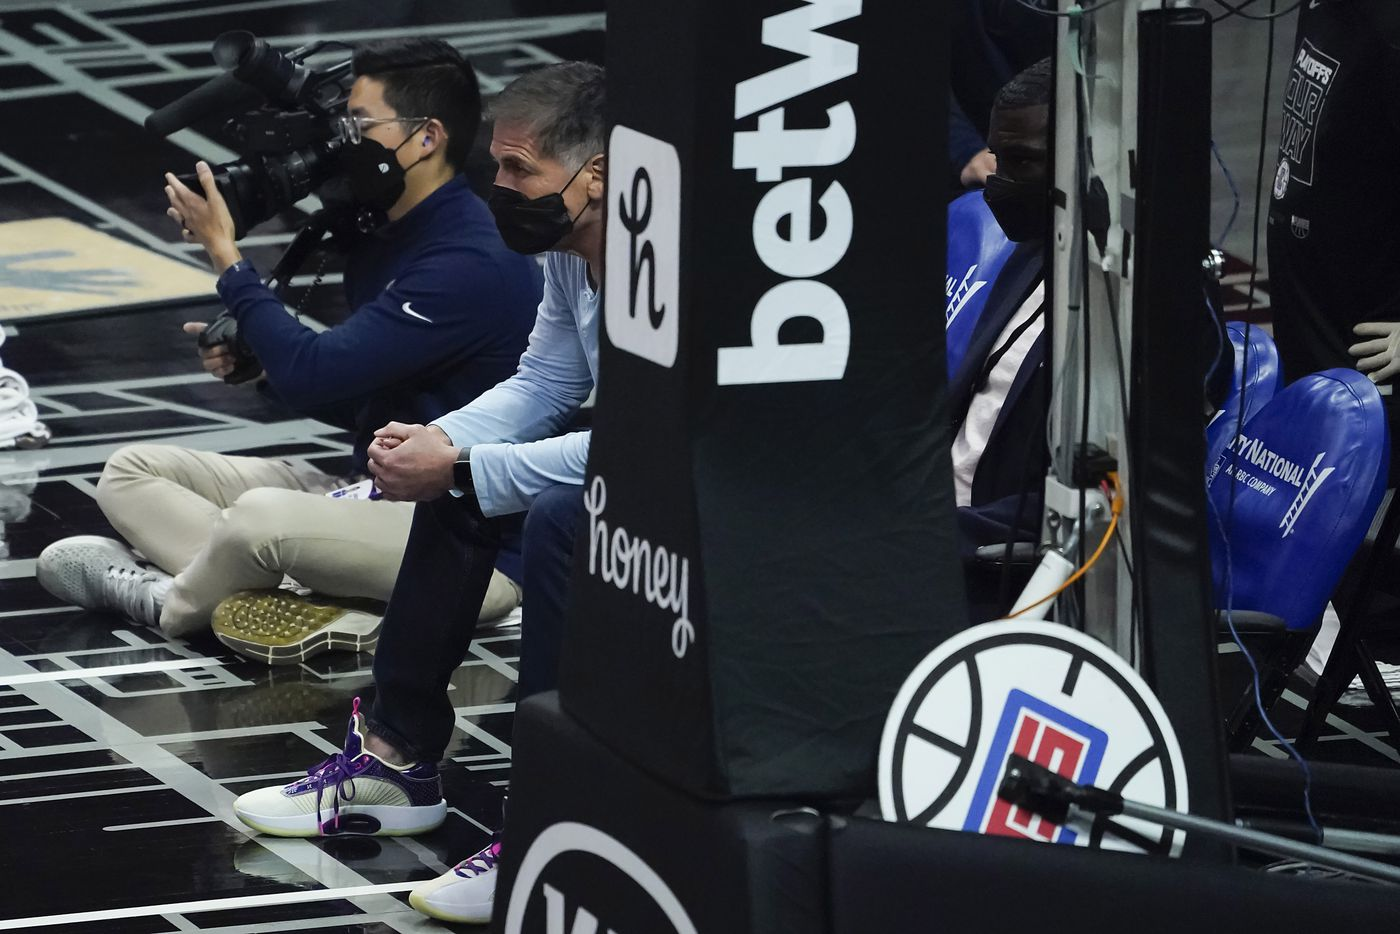 Dallas Mavericks owner Mark Cuban watches during the first half of an NBA playoff basketball game against the LA Clippers at Staples Center on Tuesday, May 25, 2021, in Los Angeles.